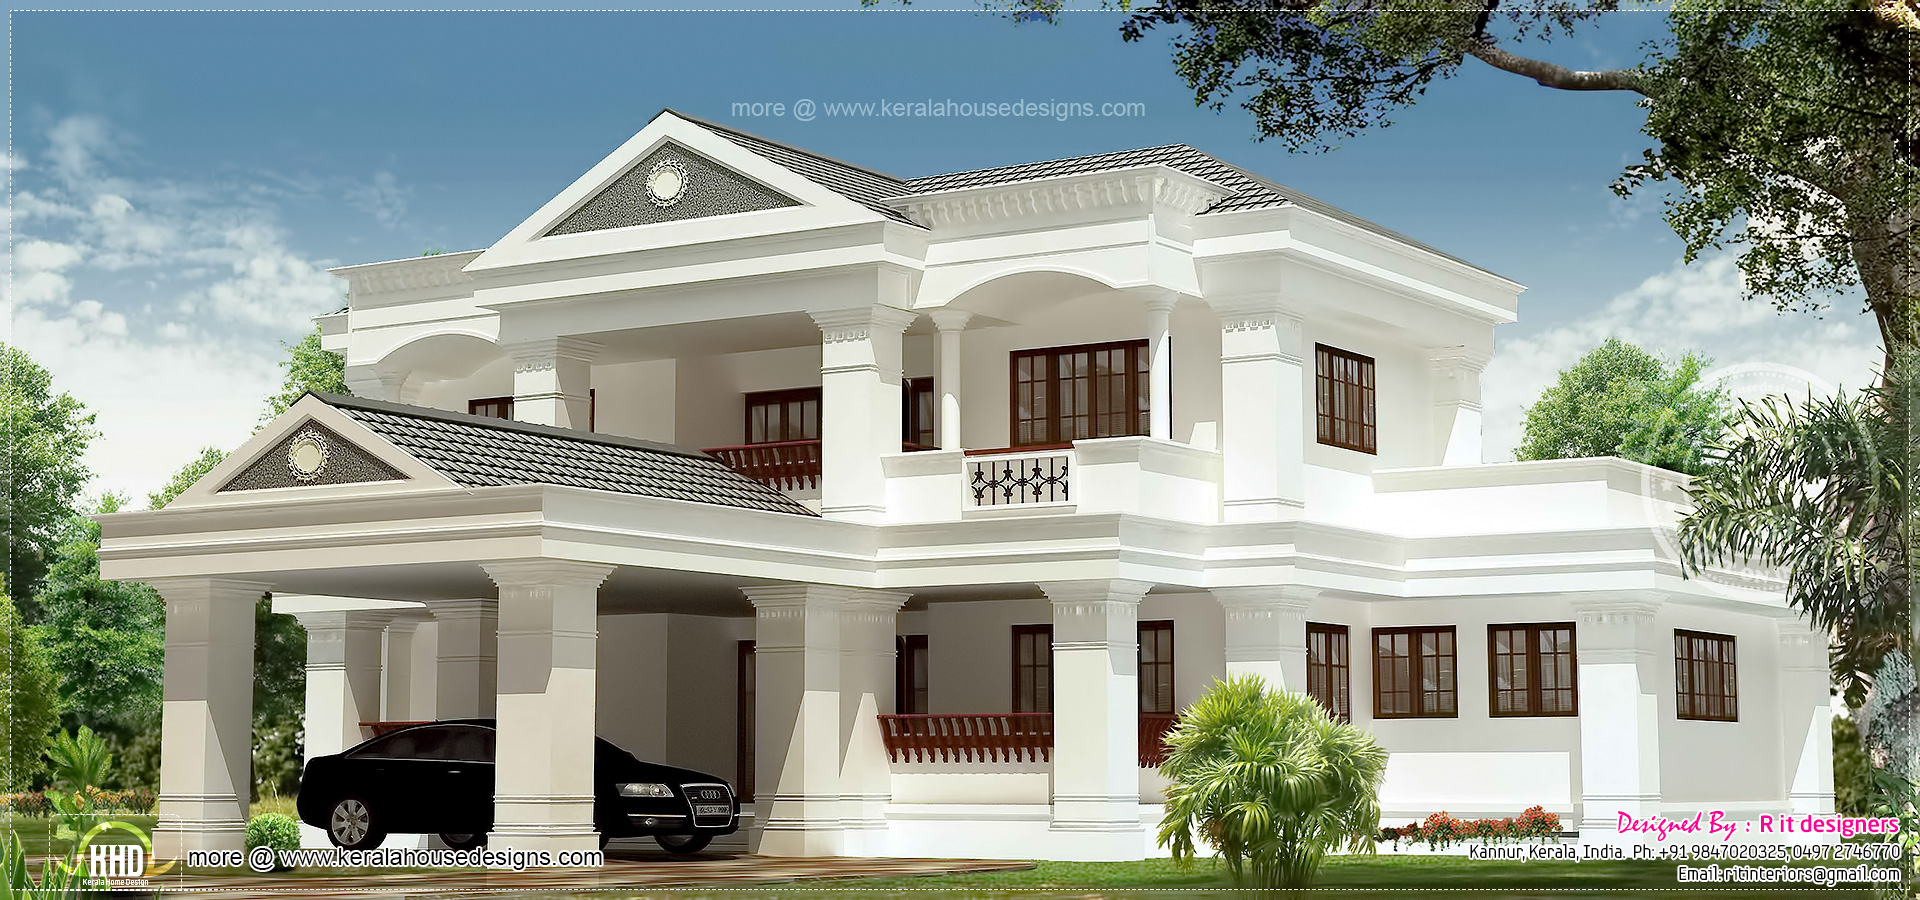 3100 luxury 5 bhk villa exterior kerala home for 3000 sq ft house plans kerala style